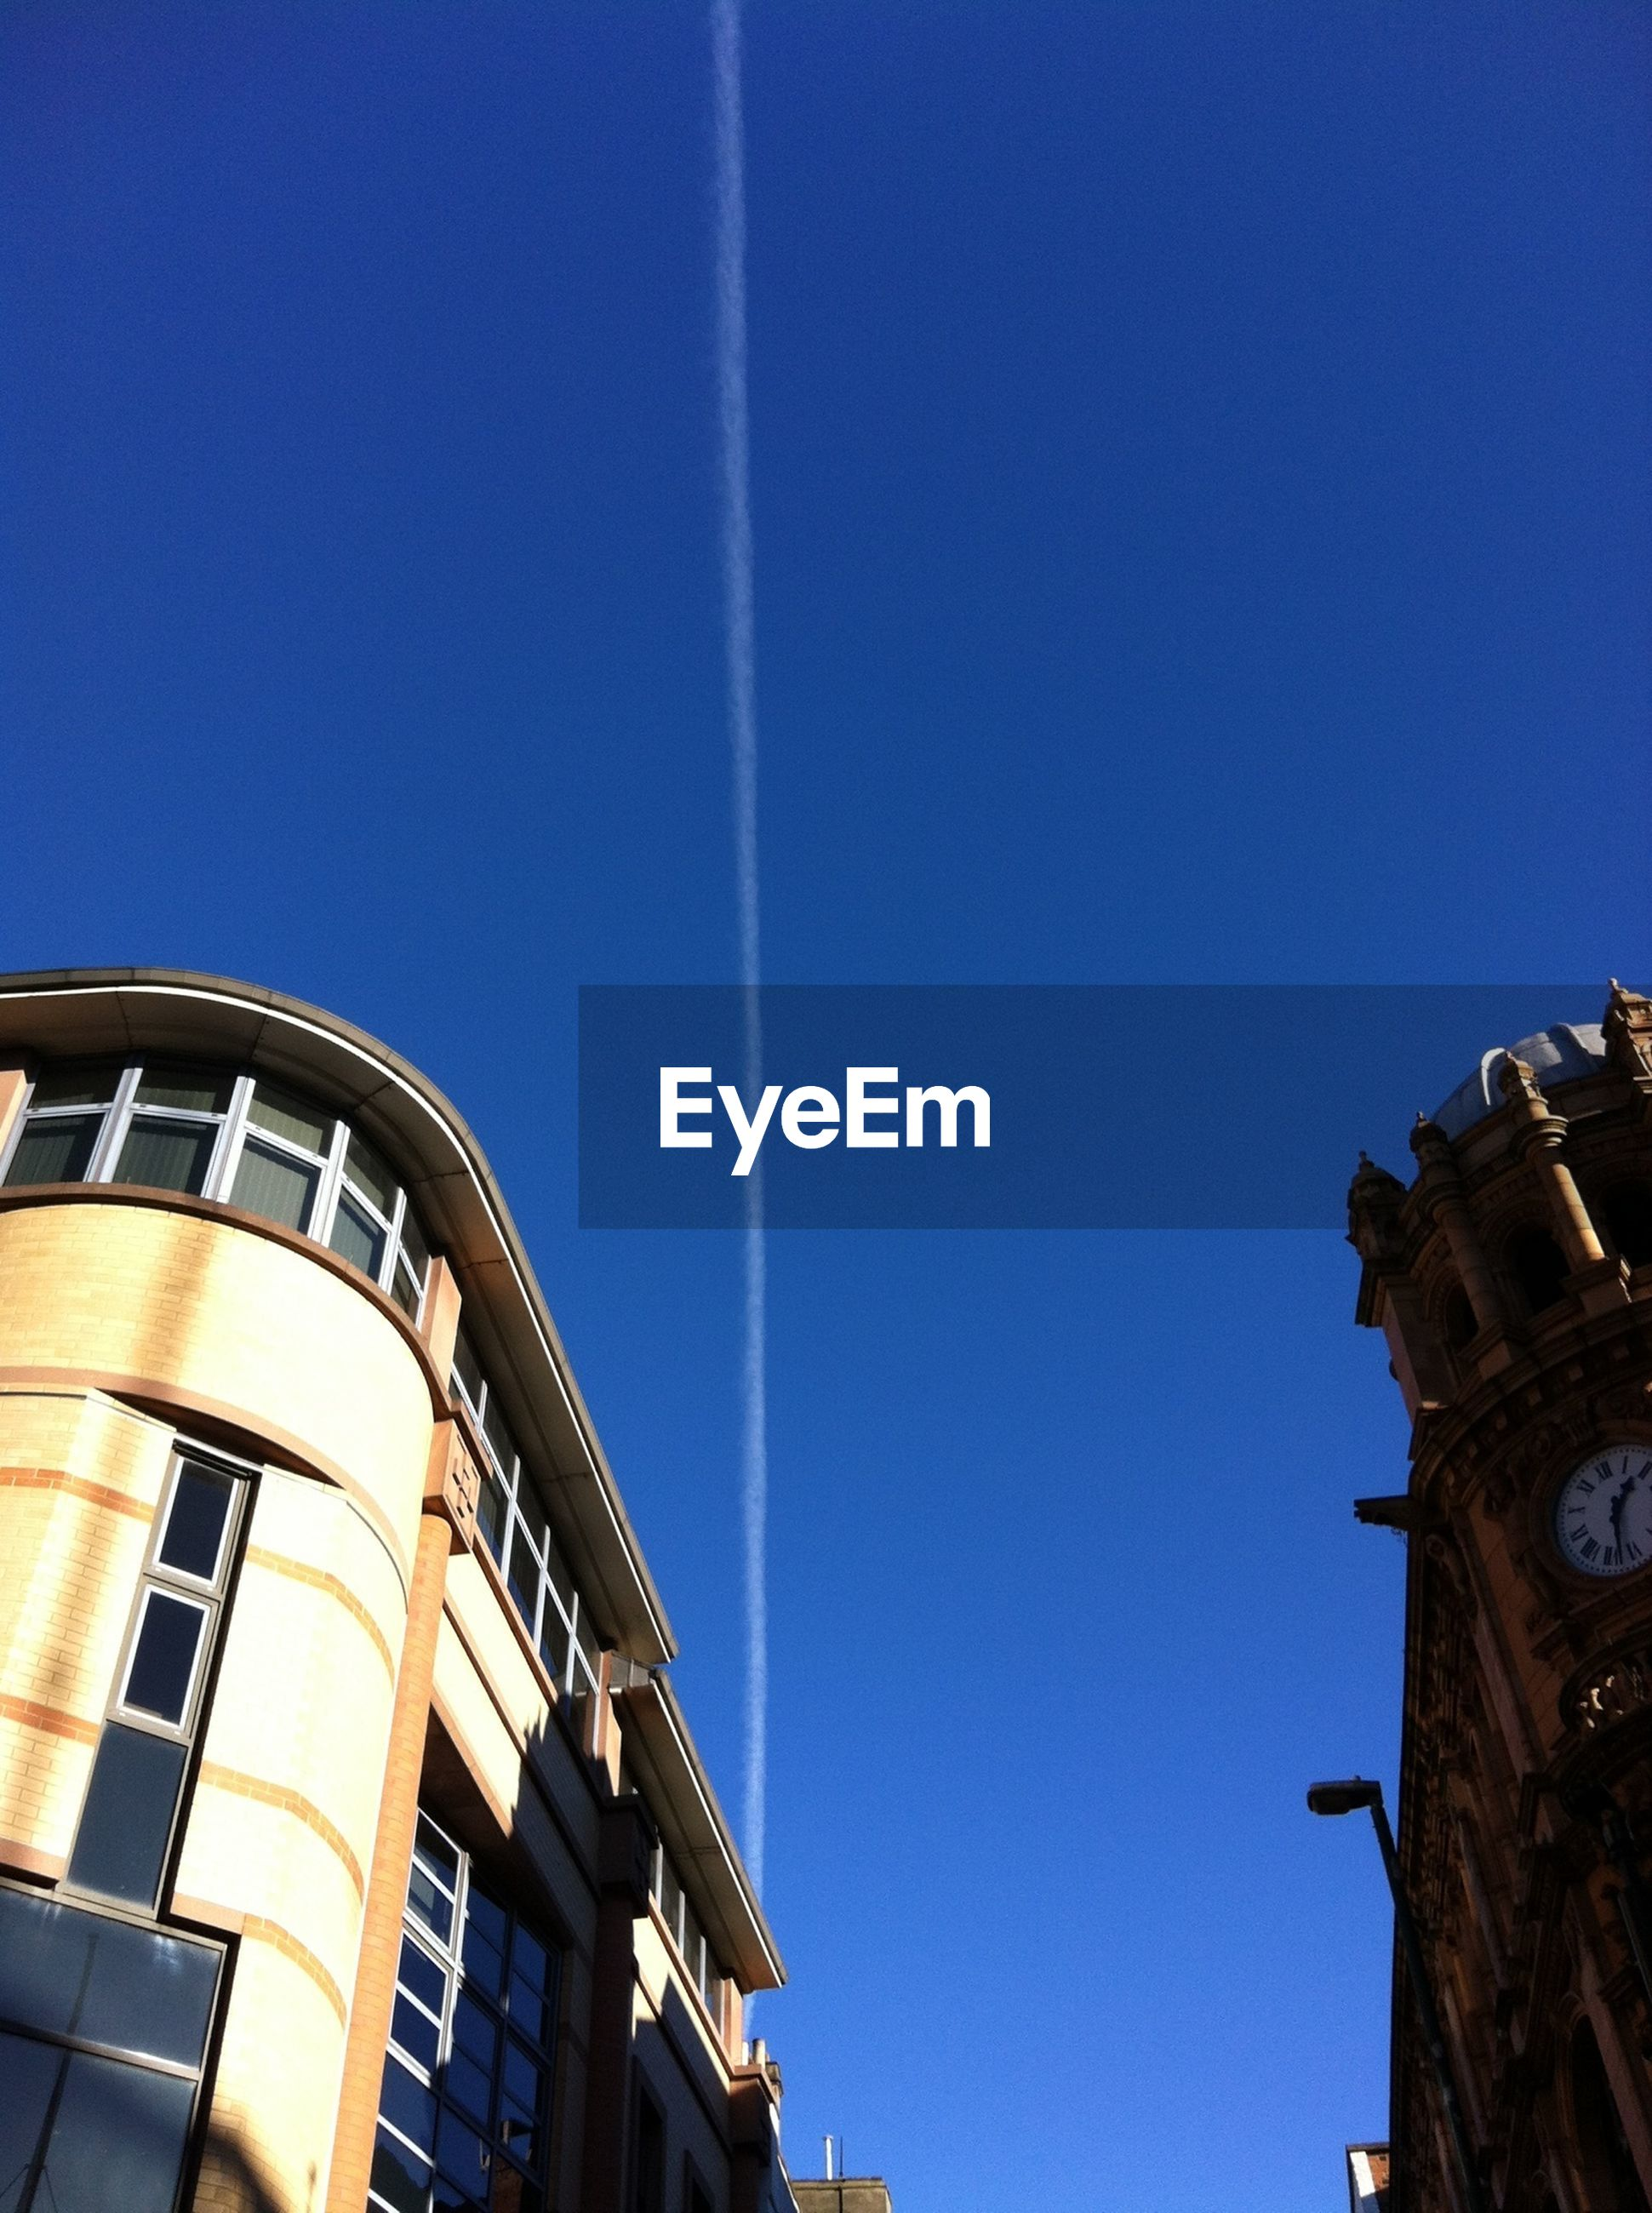 Low angle view of buildings against vapor trail in clear blue sky